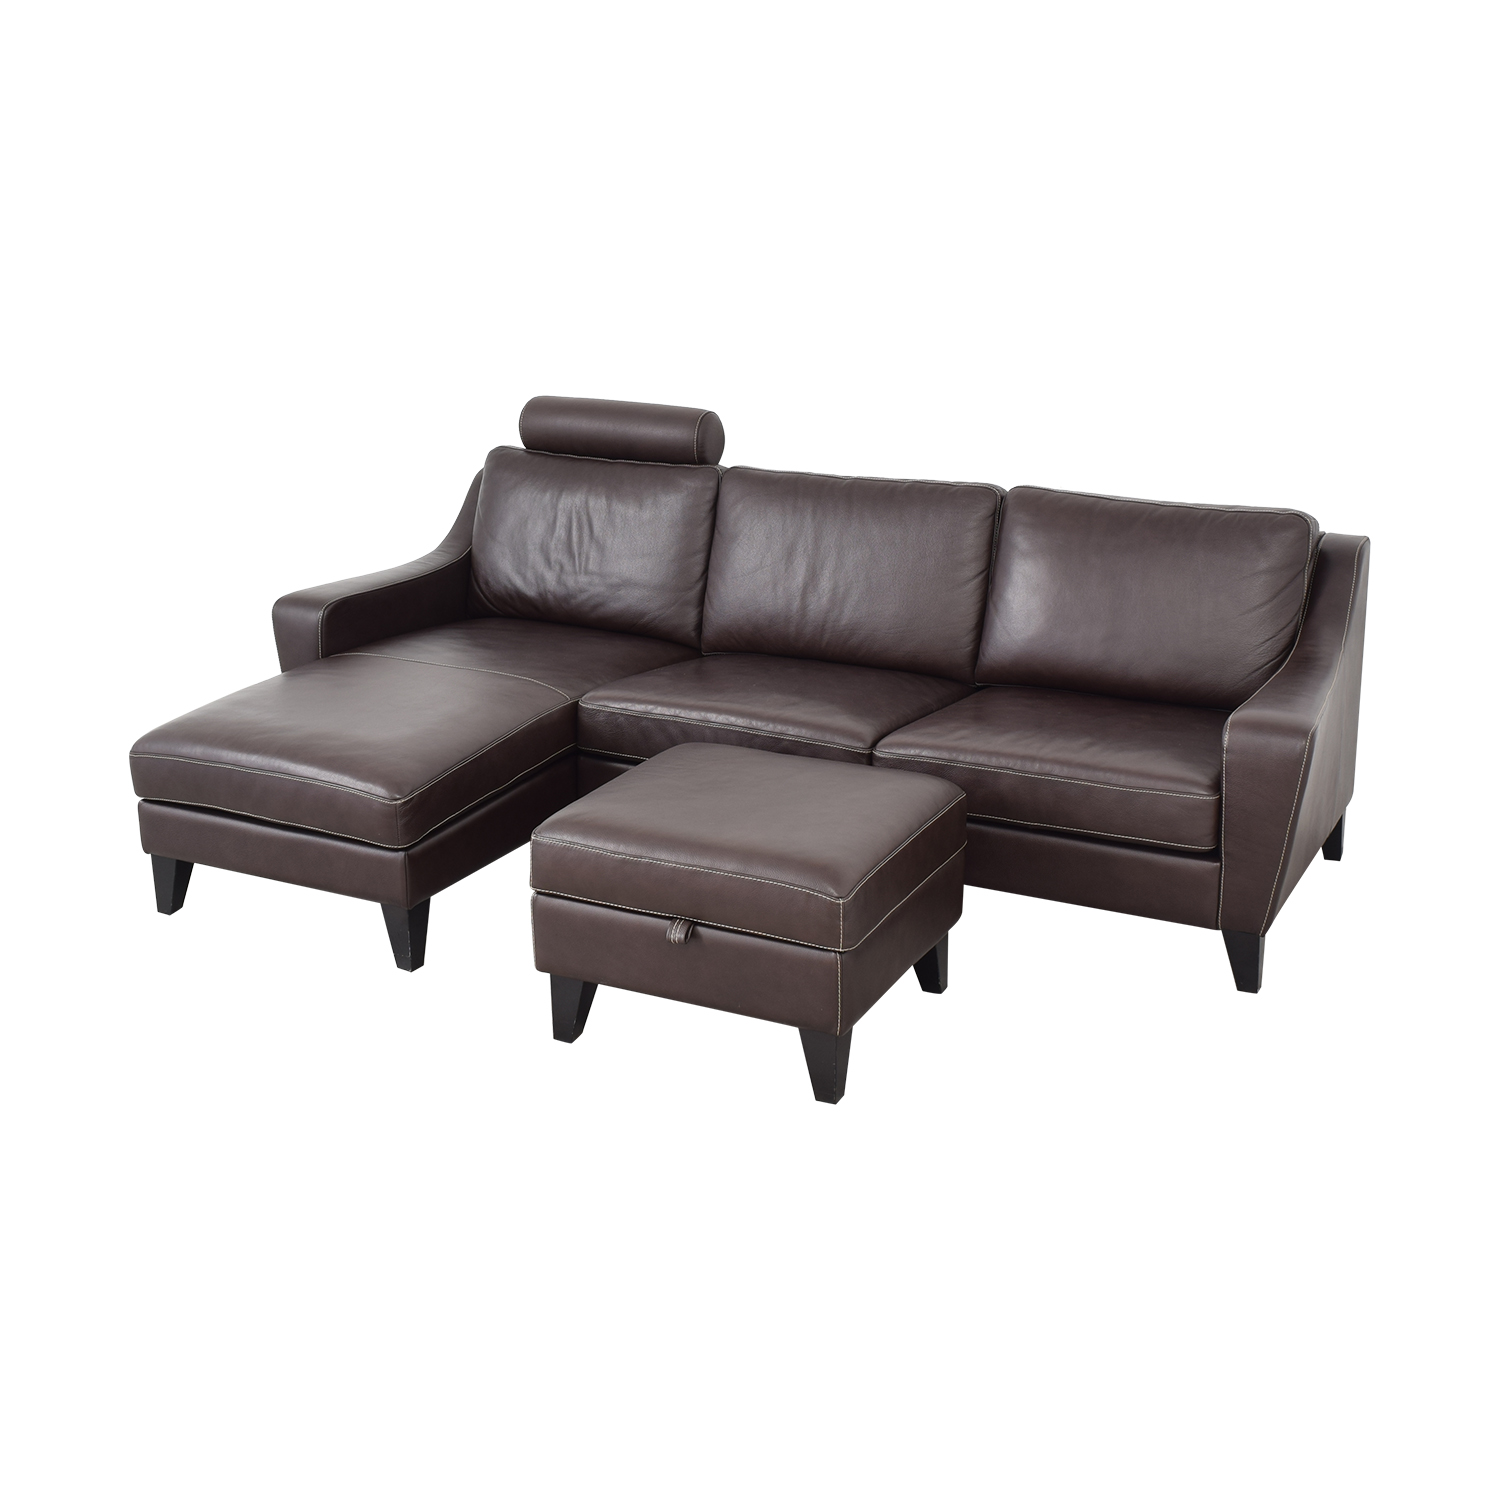 Lind Lind Chaise Sofa with Headrest and Ottoman nyc